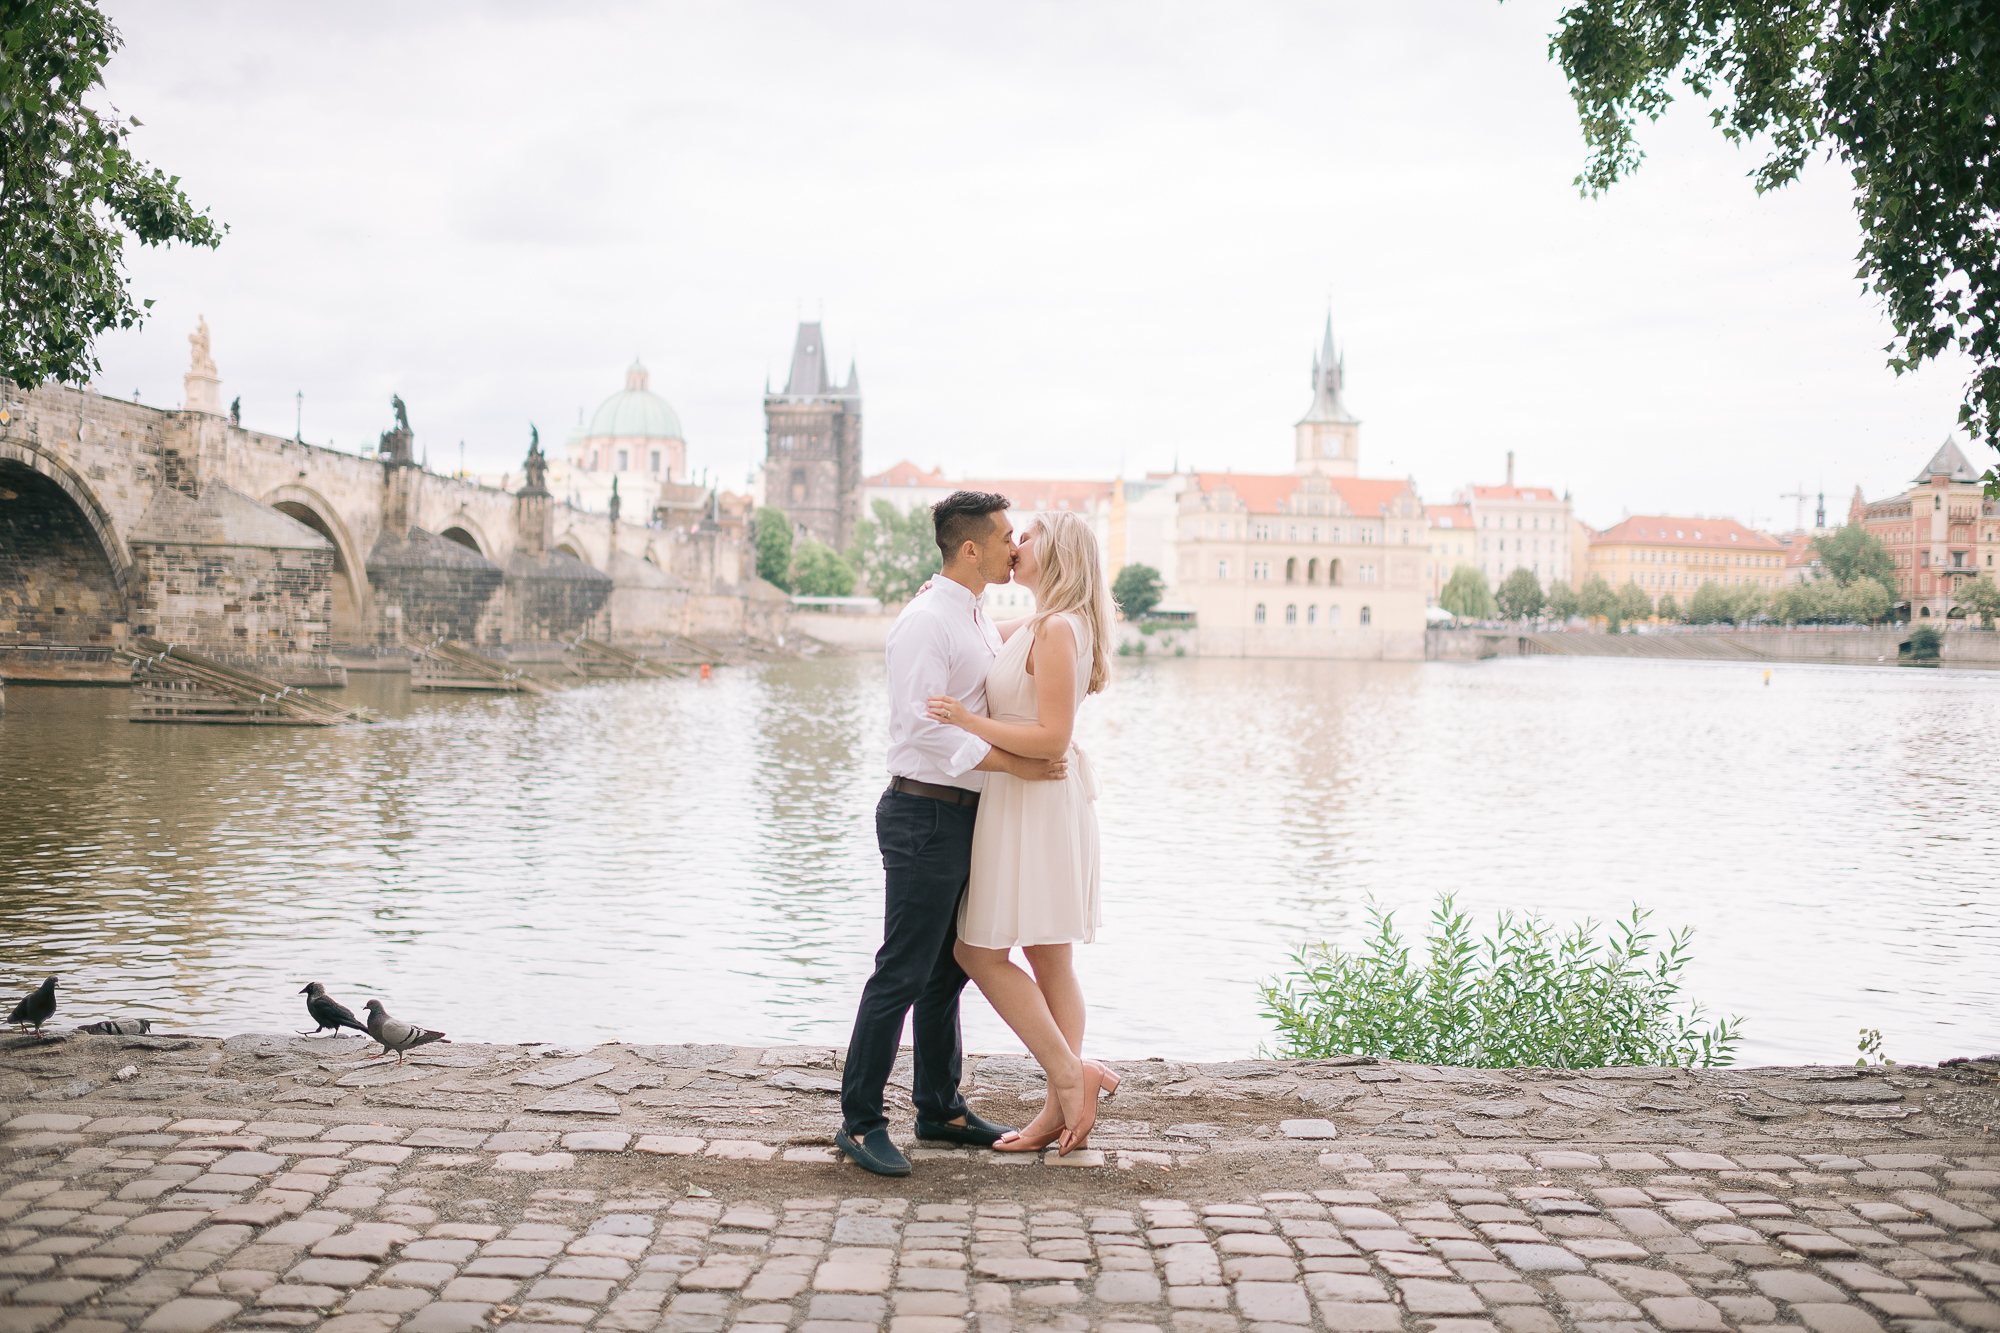 Prague-Wedding-Photography-Matej-Trasak-Engagement-AJ-15.jpg